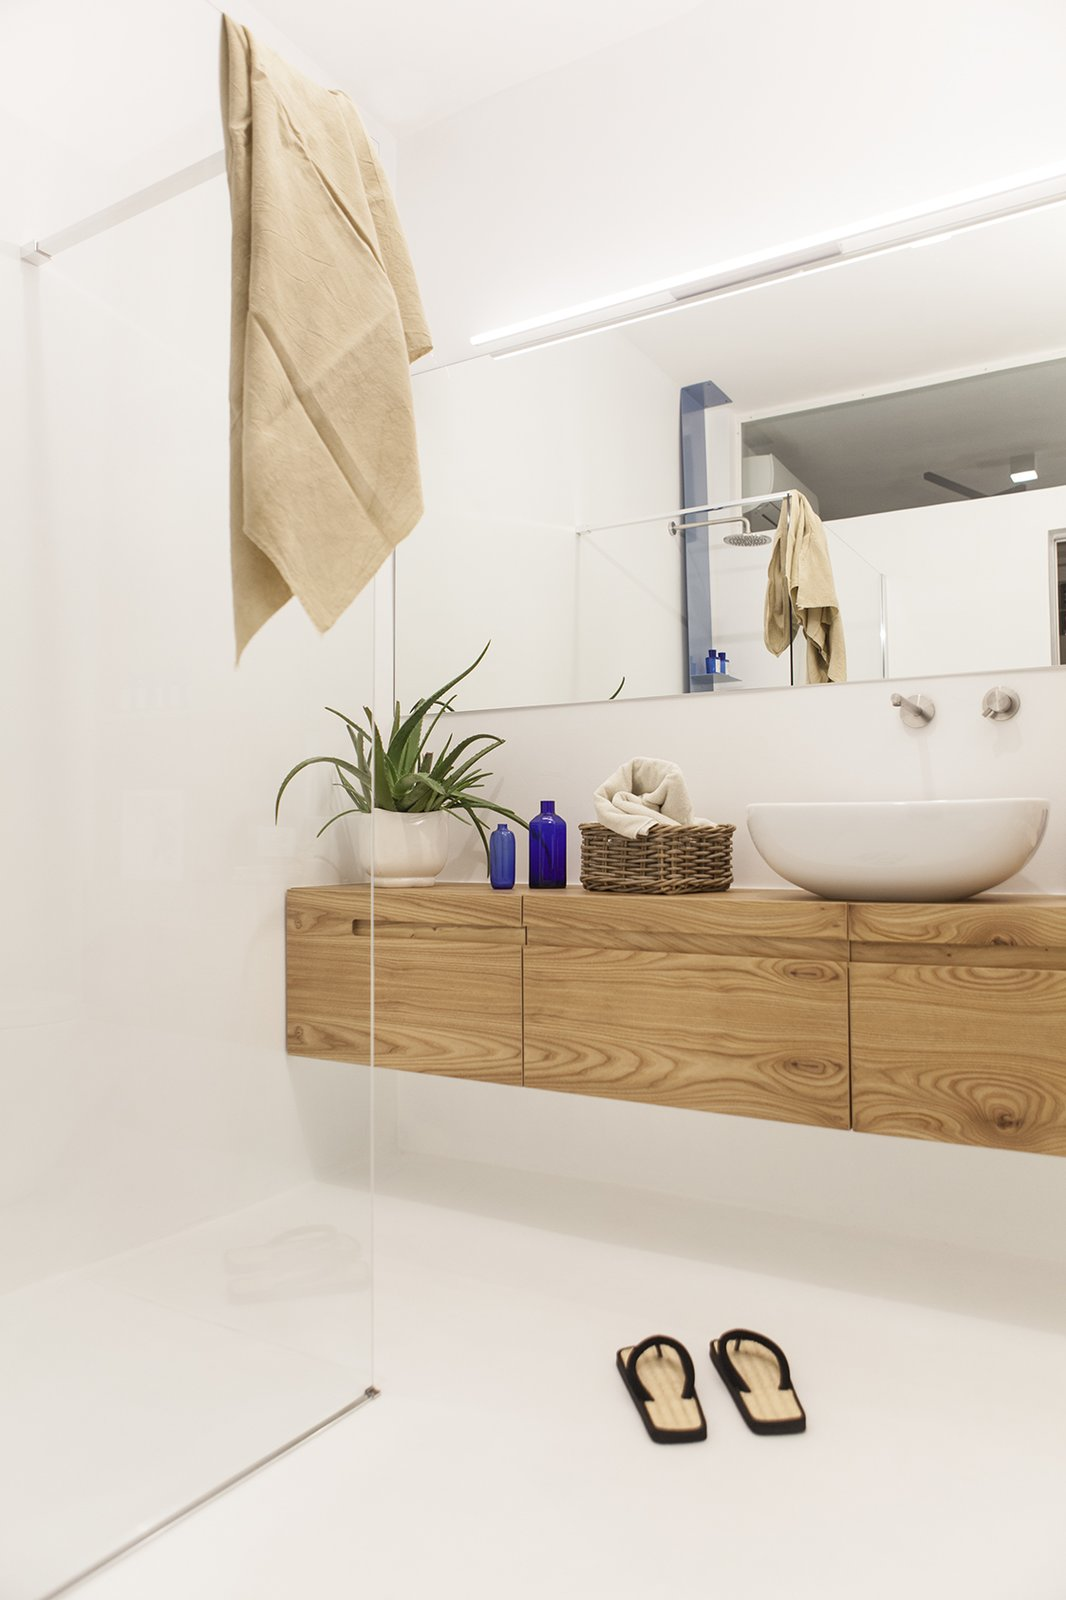 bathroom Tagged: Bath Room, Wall Lighting, One Piece Toilet, and Open Shower. Iterior DM by Didonè Comacchio